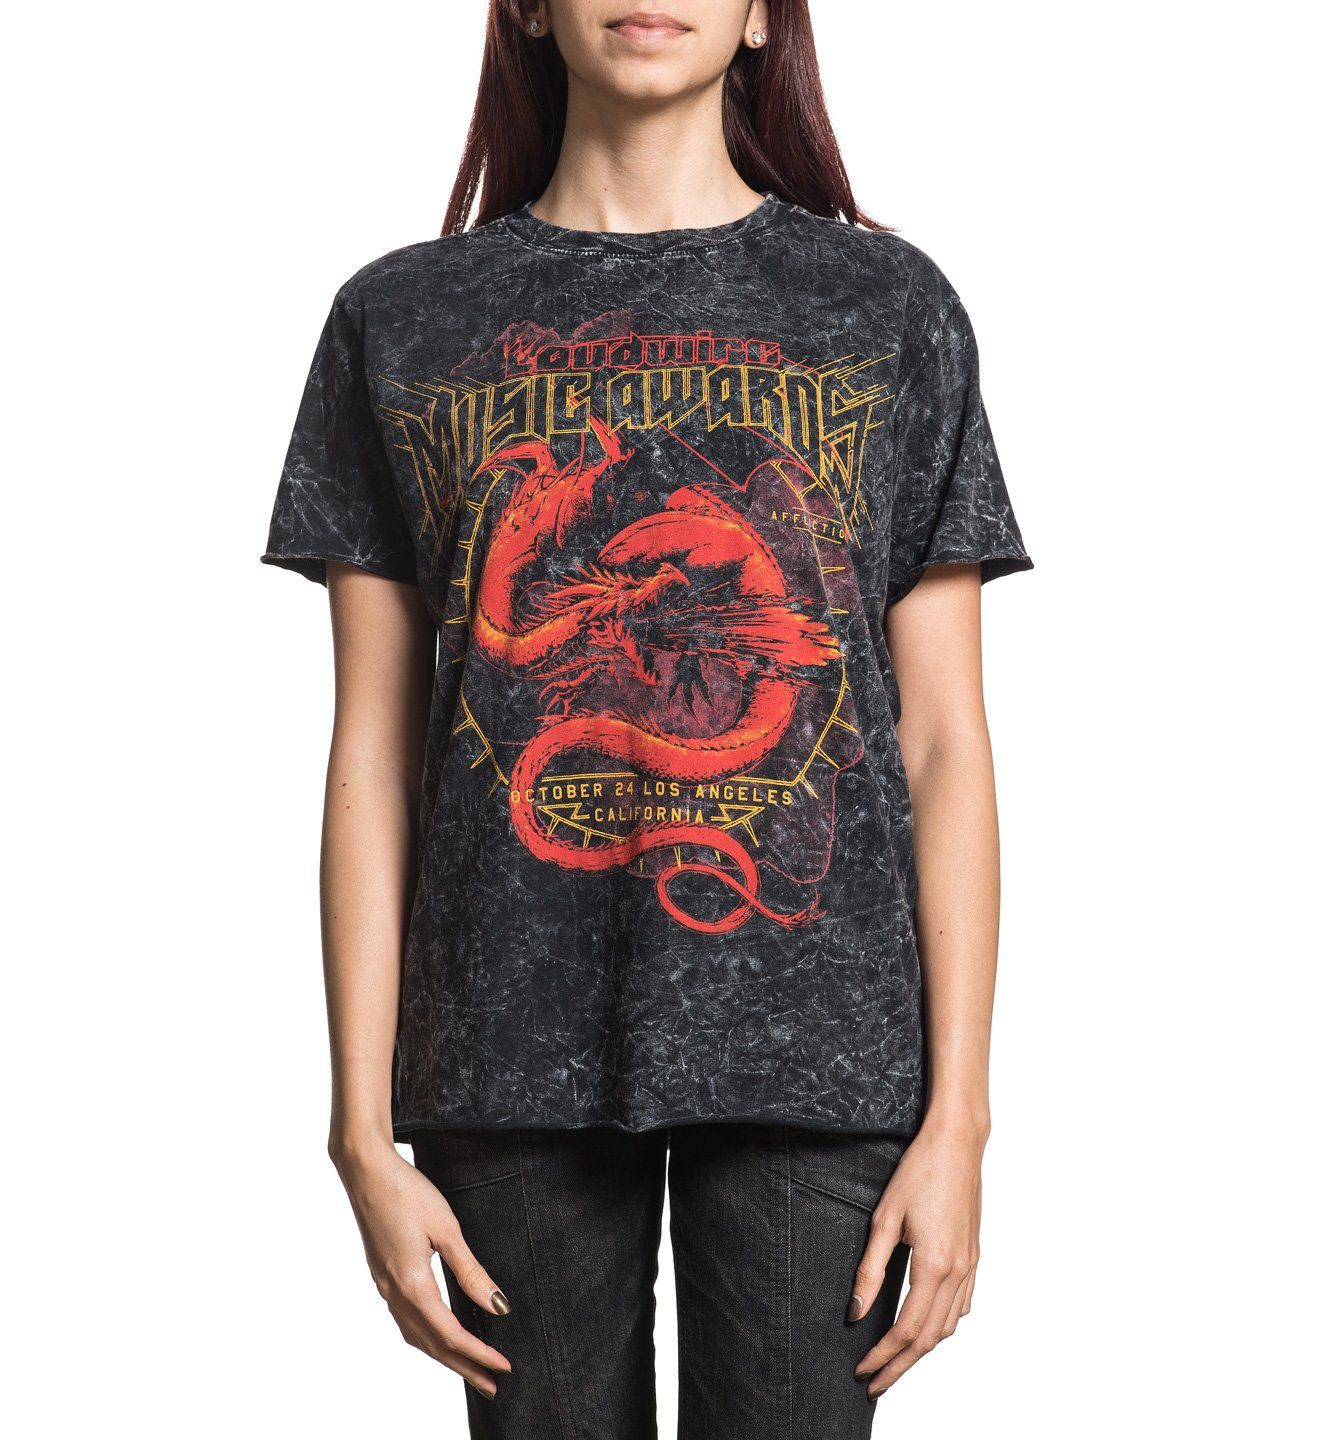 Womens Short Sleeve Tees - Women's Loudwire Awards Tee